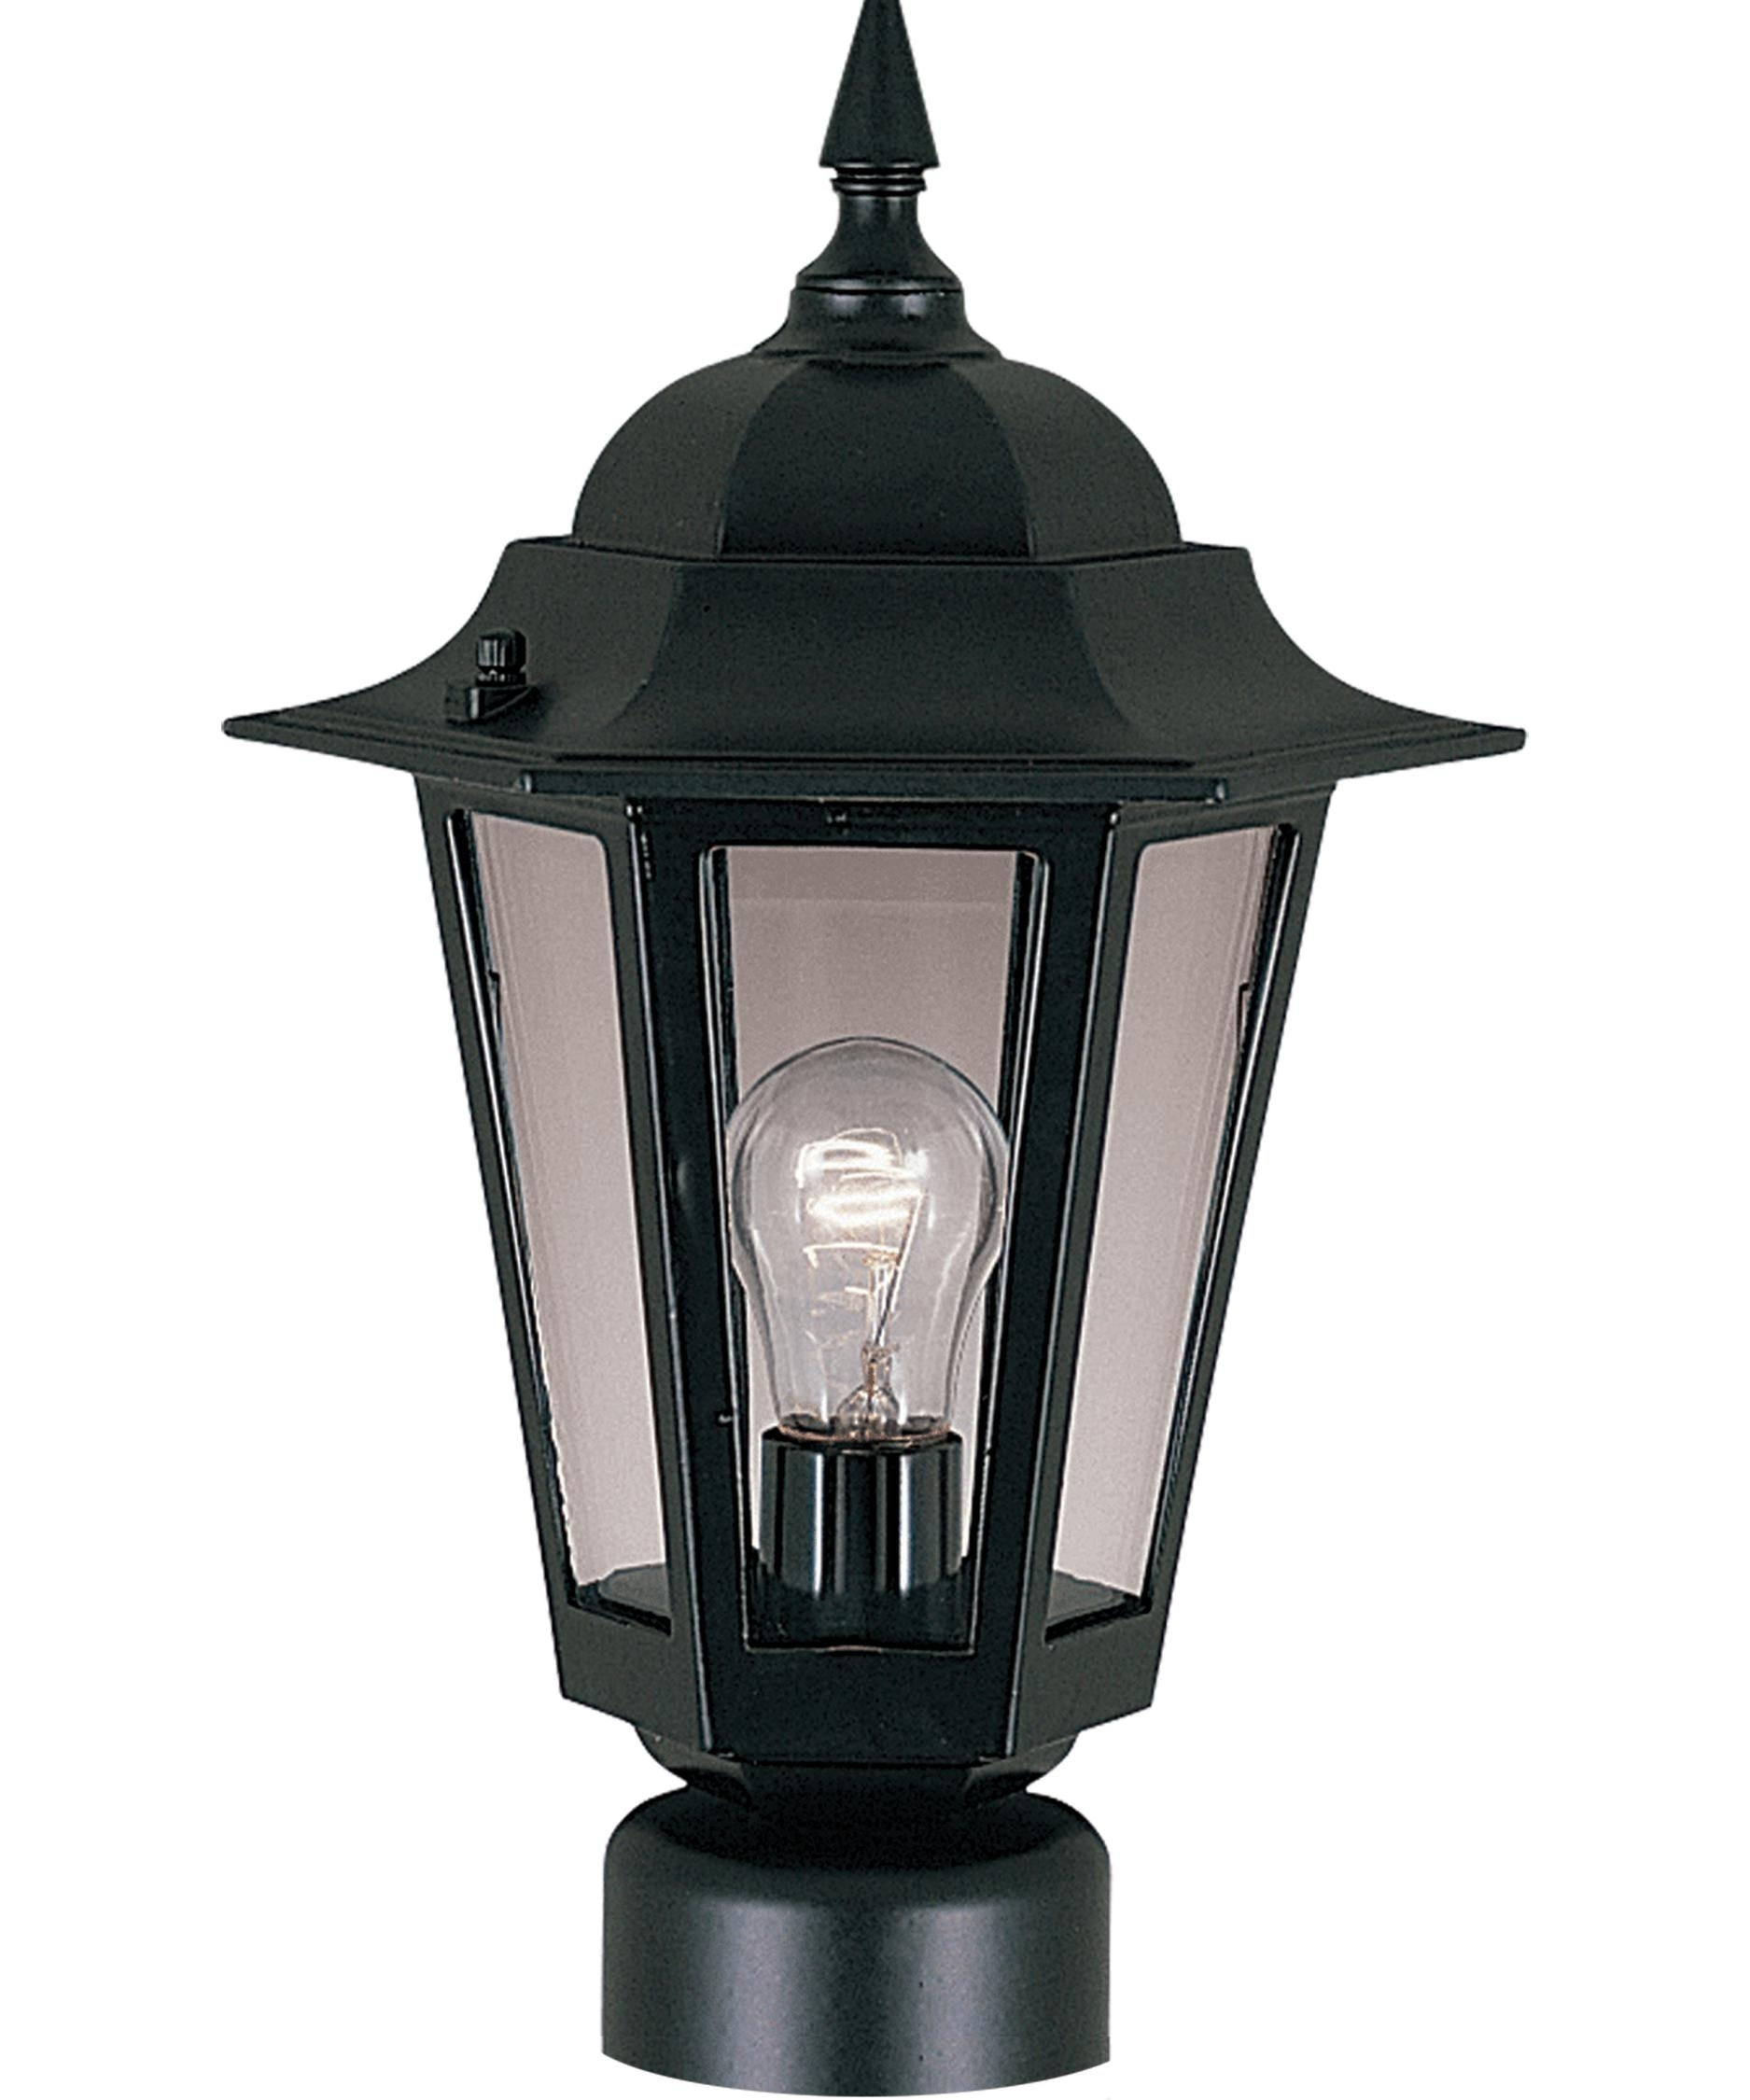 Outdoor Post Lamps & Post Lighting: Led, Incandescent | Capitol pertaining to Outdoor Mexican Lanterns (Image 17 of 20)